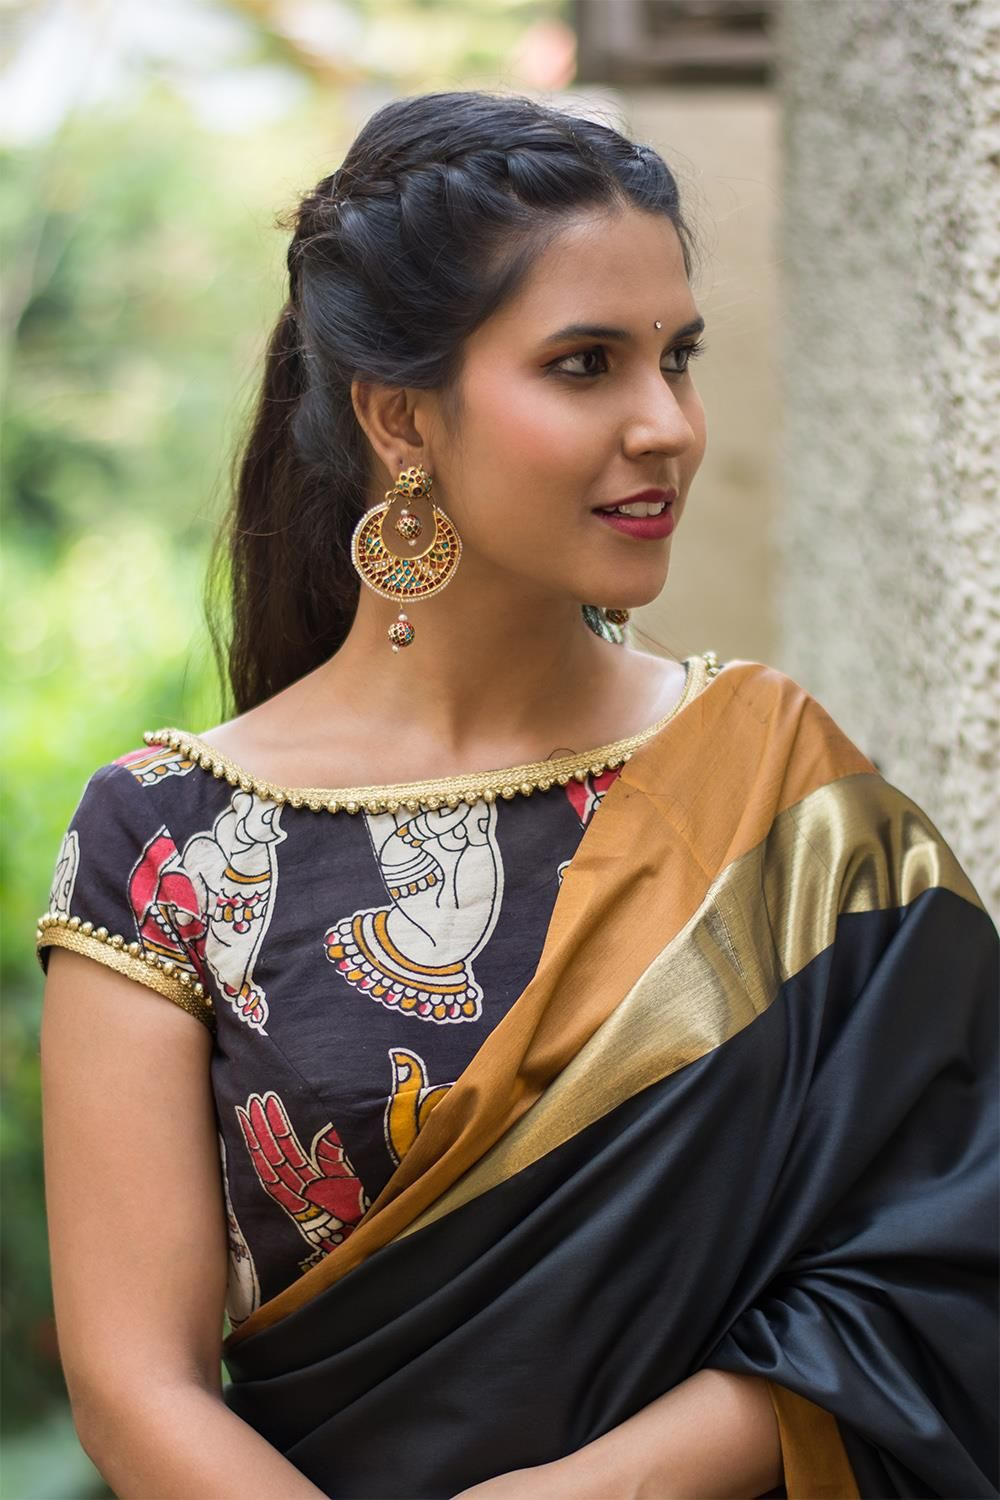 Blouse designs saree blouse back designs blouses neck designs 30 jpg - Buy Readymade Blouse Online Shopping India Has Got Variety Of Blouse Designs Designer Blouses Ready To Wear Saree Blouses